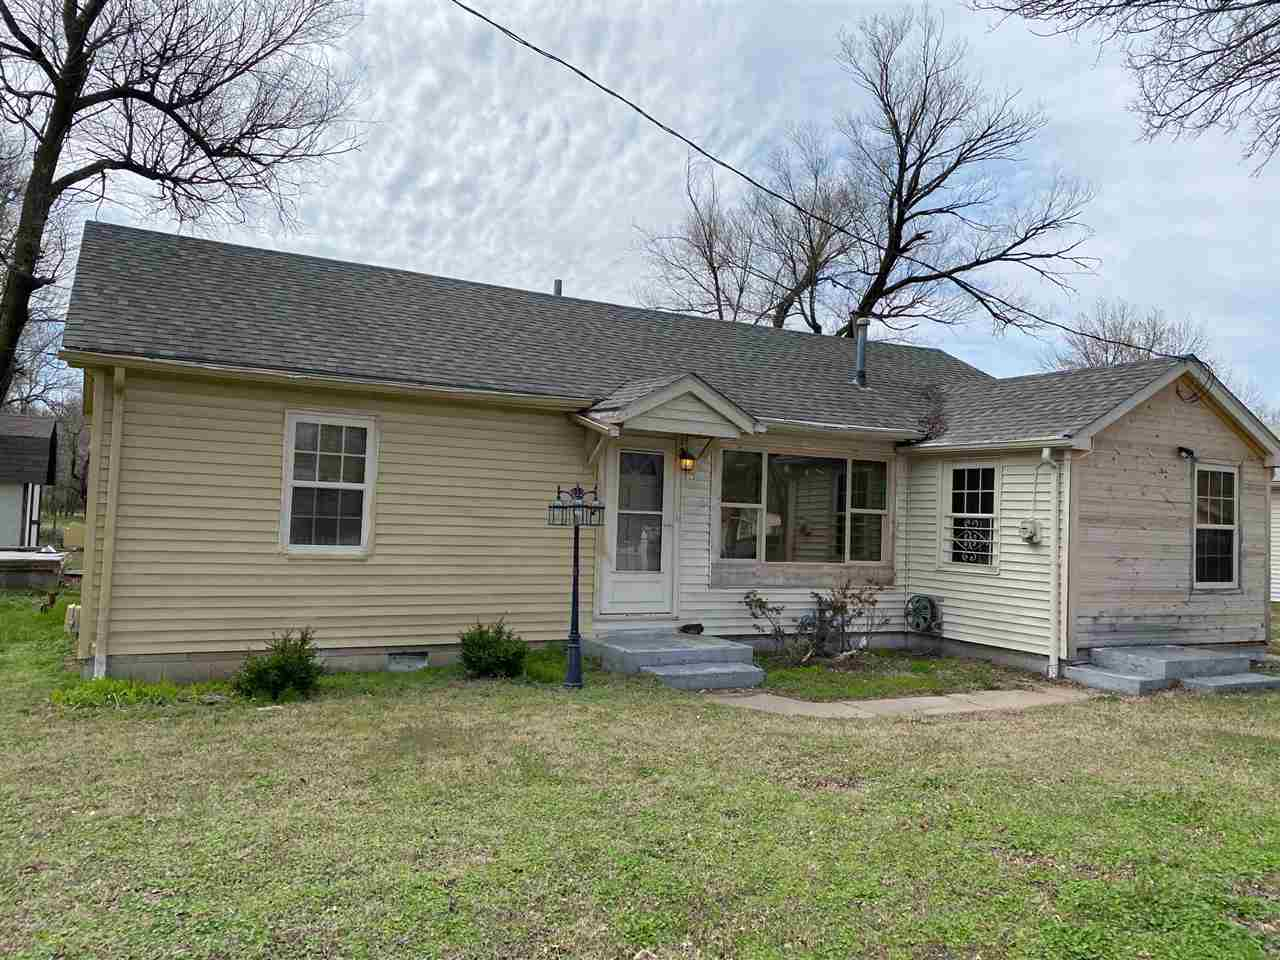 This is an amazing opportunity for the investor or owner occupant who wants to improve this property